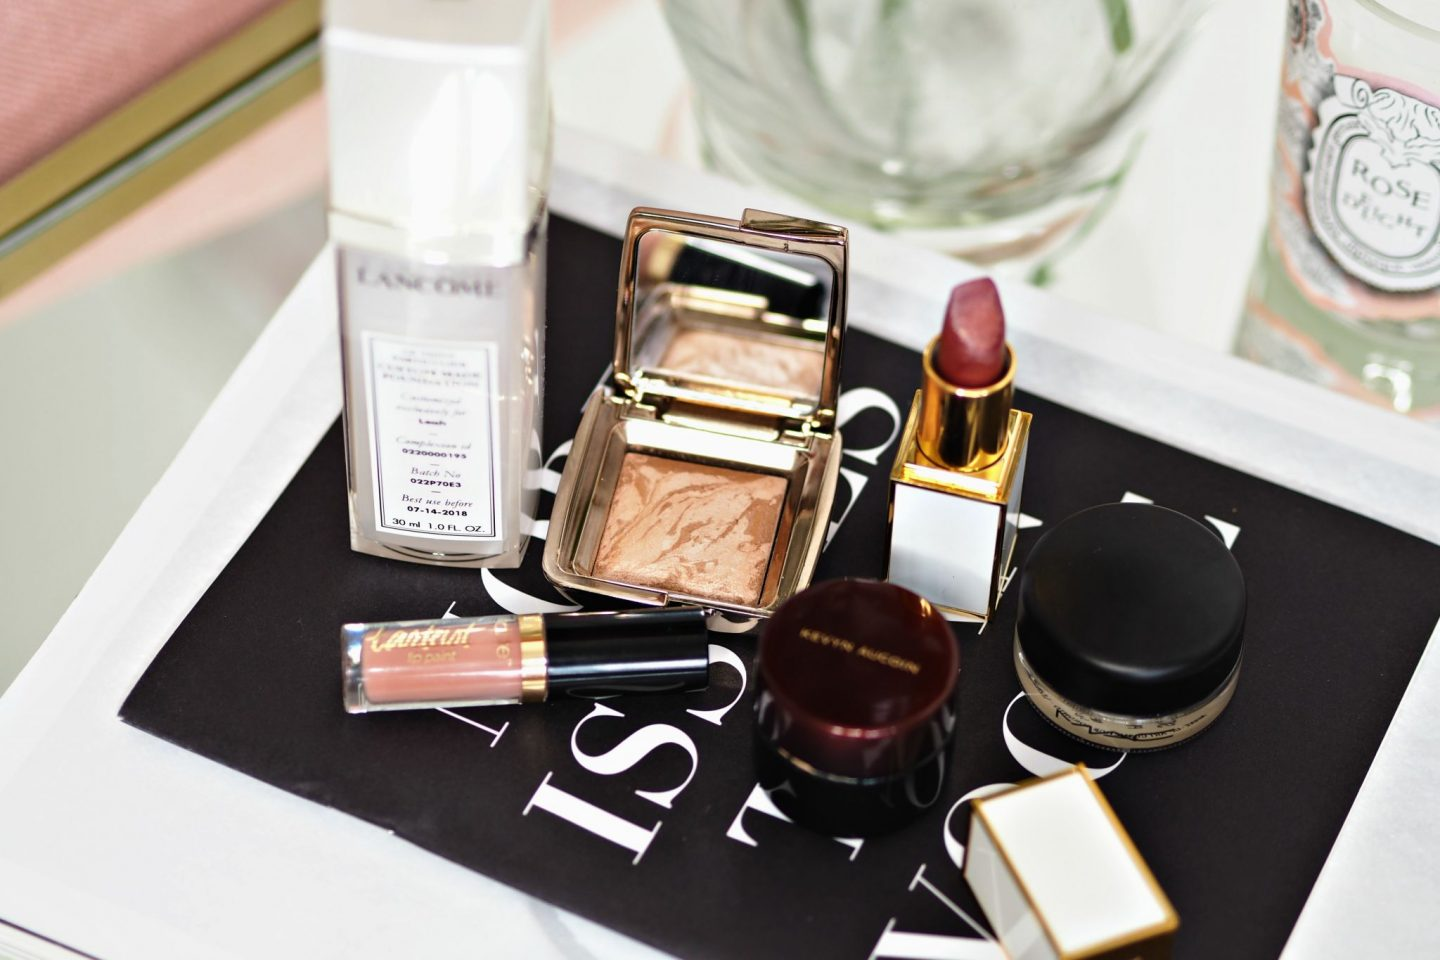 Luxury makeup disappointments